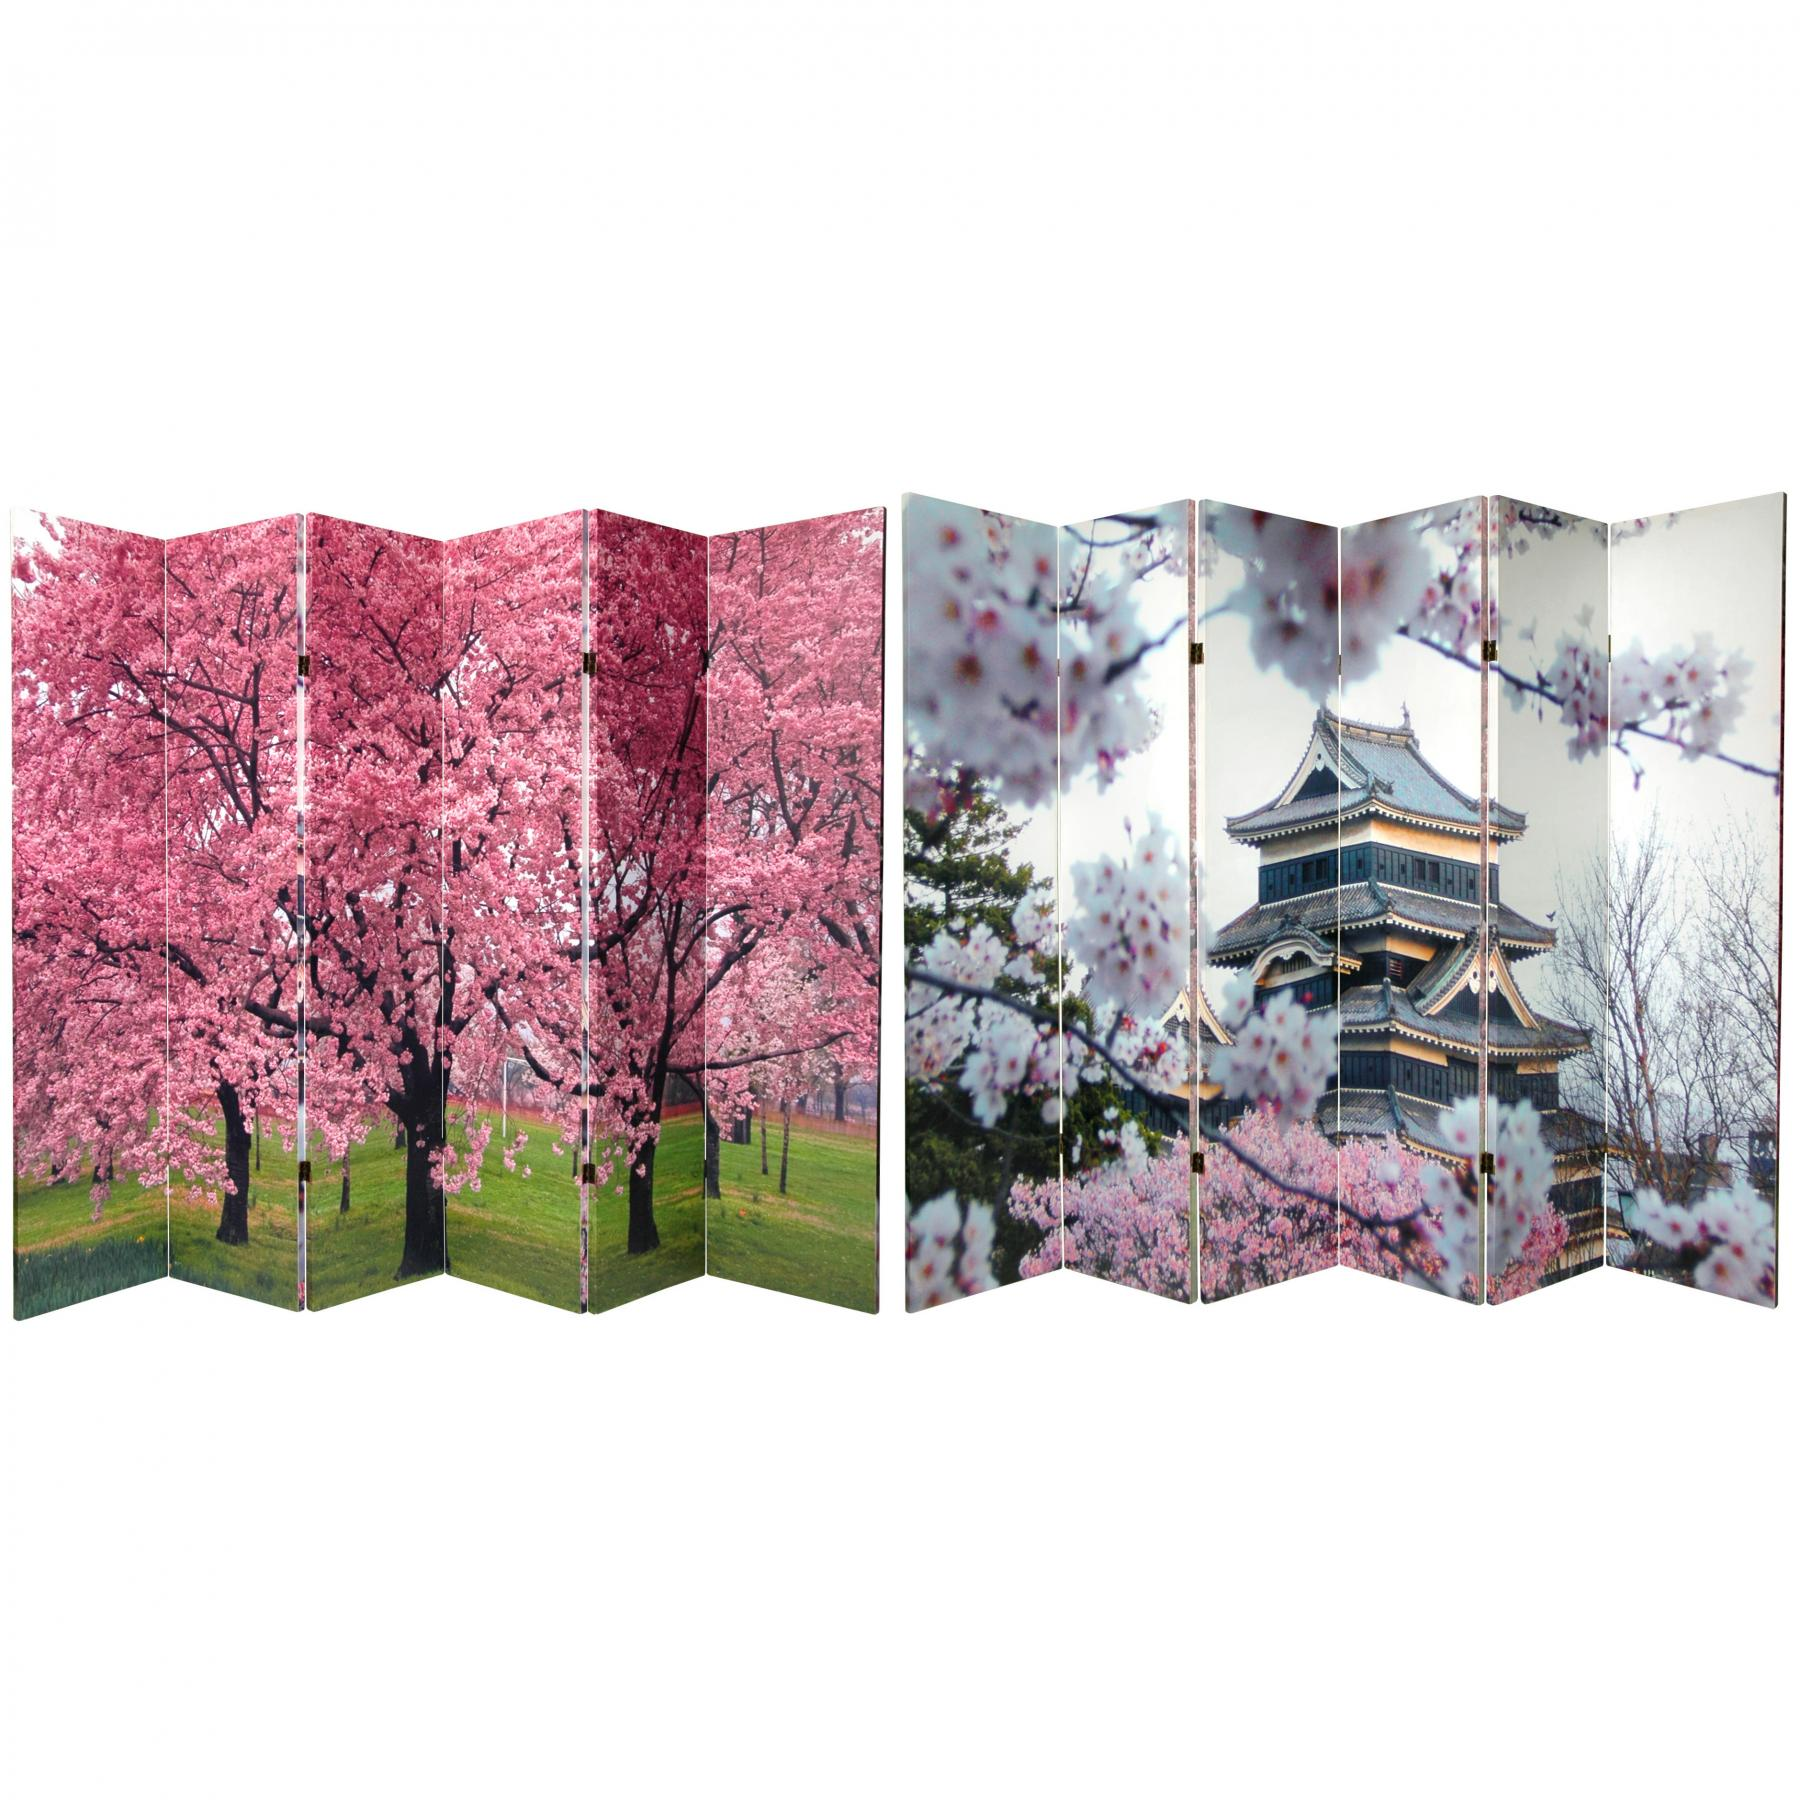 Ft Tall Double Sided Cherry Blossoms Canvas Room Divider - Cherry blossom room divider screen